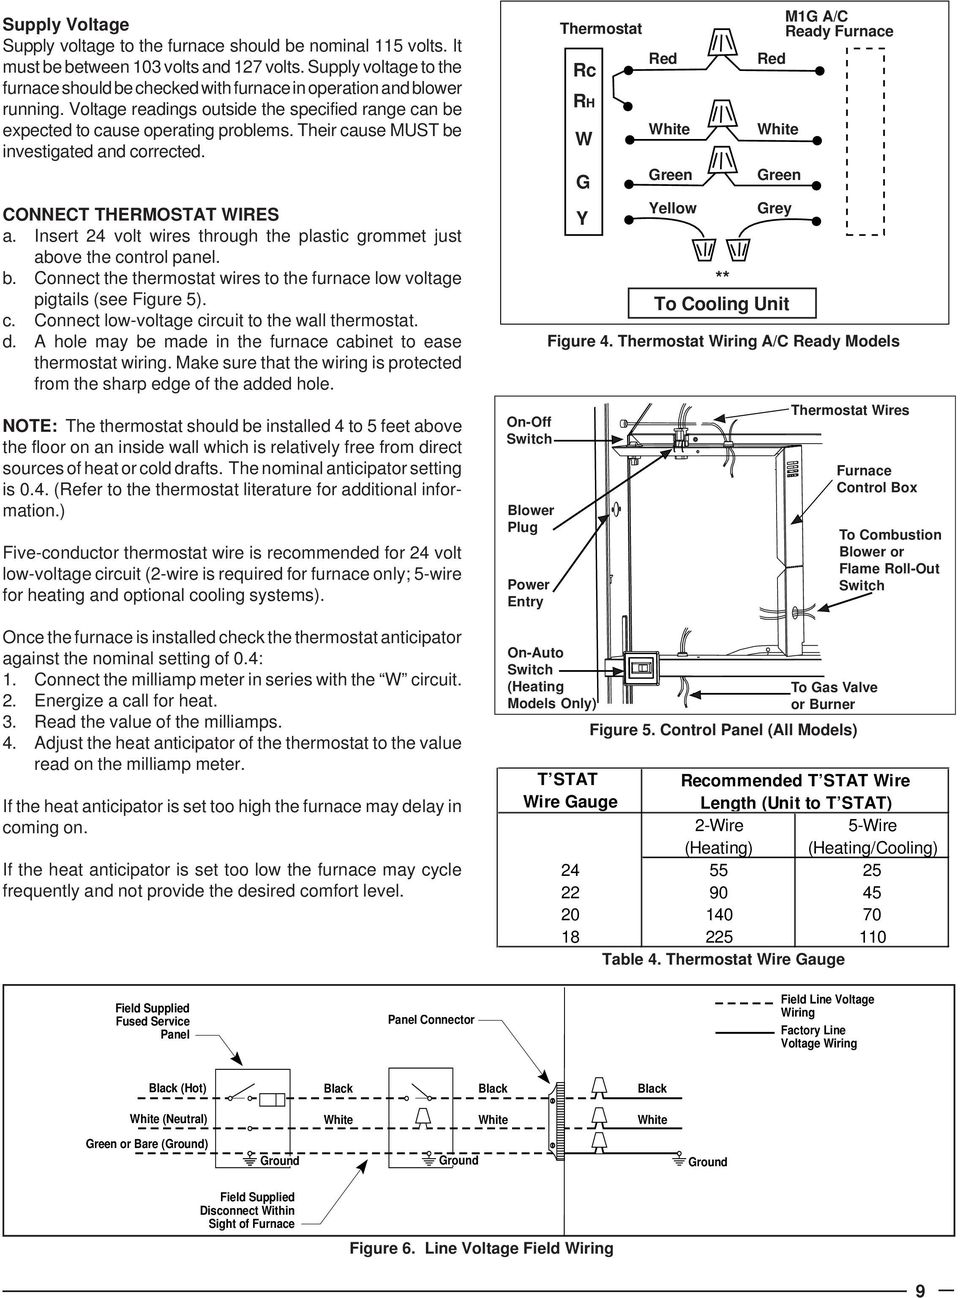 M1 Series M1g And M1m Furnaces Service Manual Pdf Thermostat Wiring Furnace For Loose Their Cause Must Be Investigated Corrected Connect Wires A Insert 24 Volt